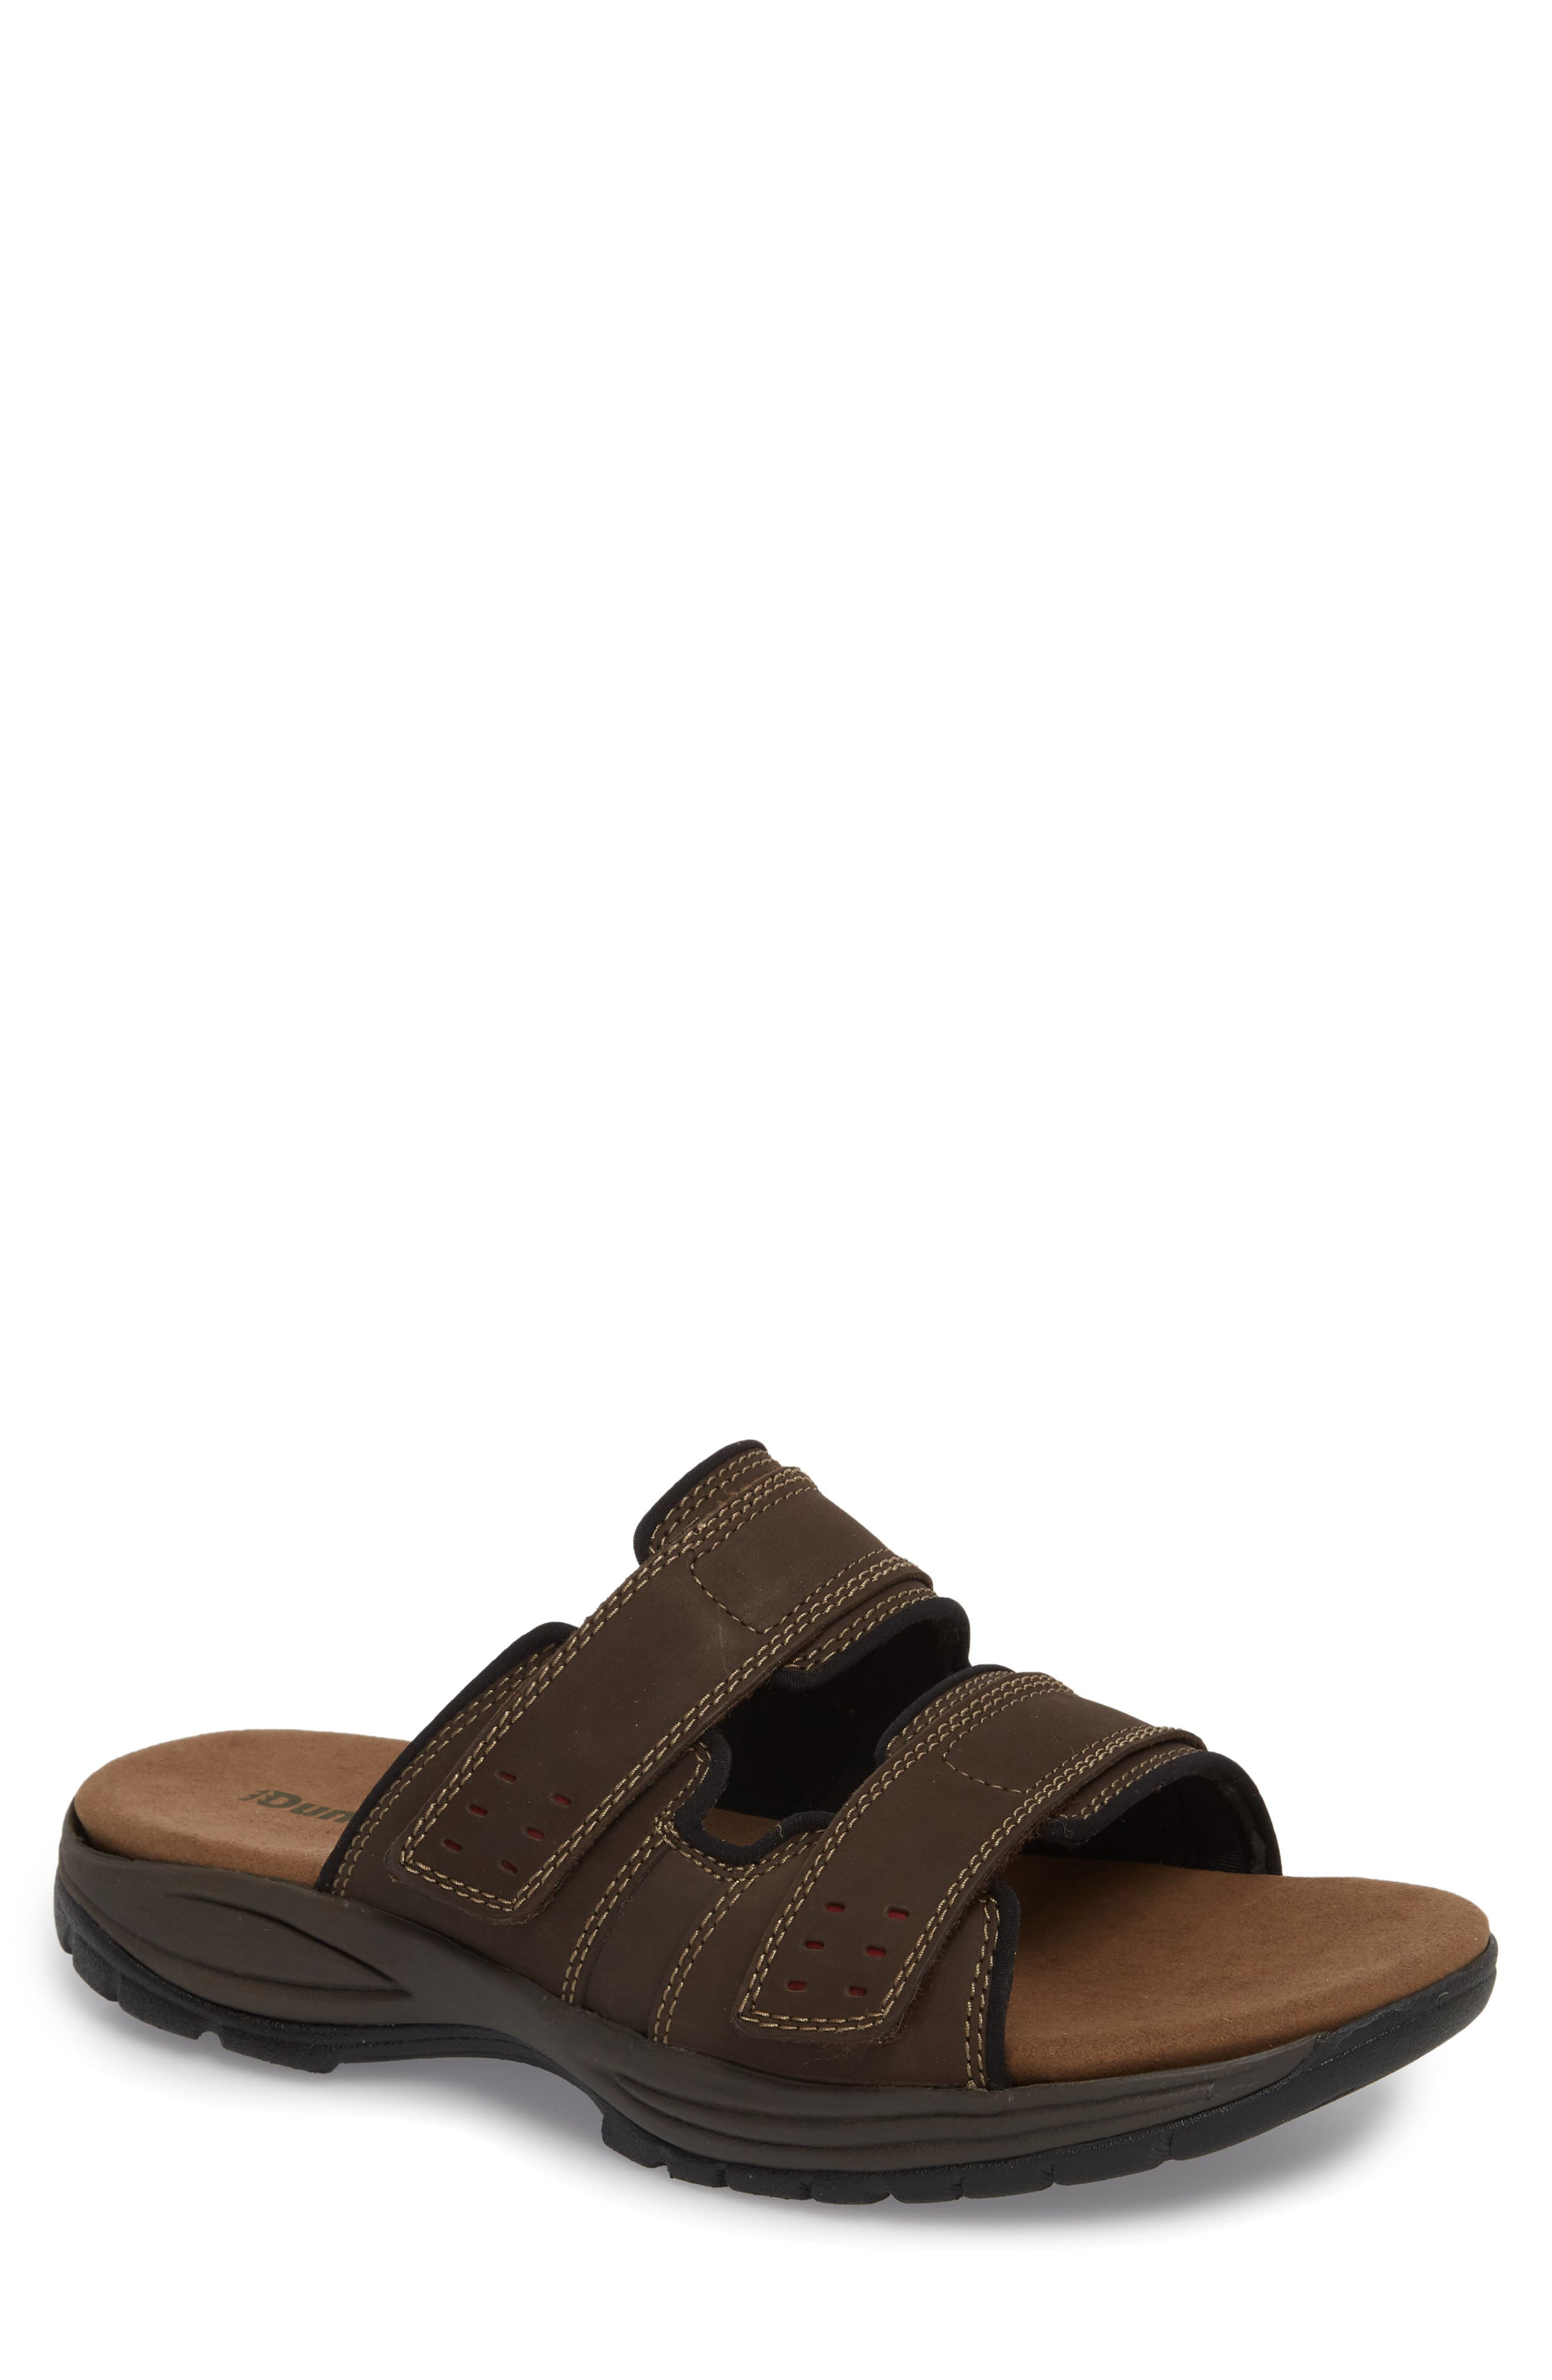 Newport Slide Sandal,                             Main thumbnail 1, color,                             Dark Brown Leather